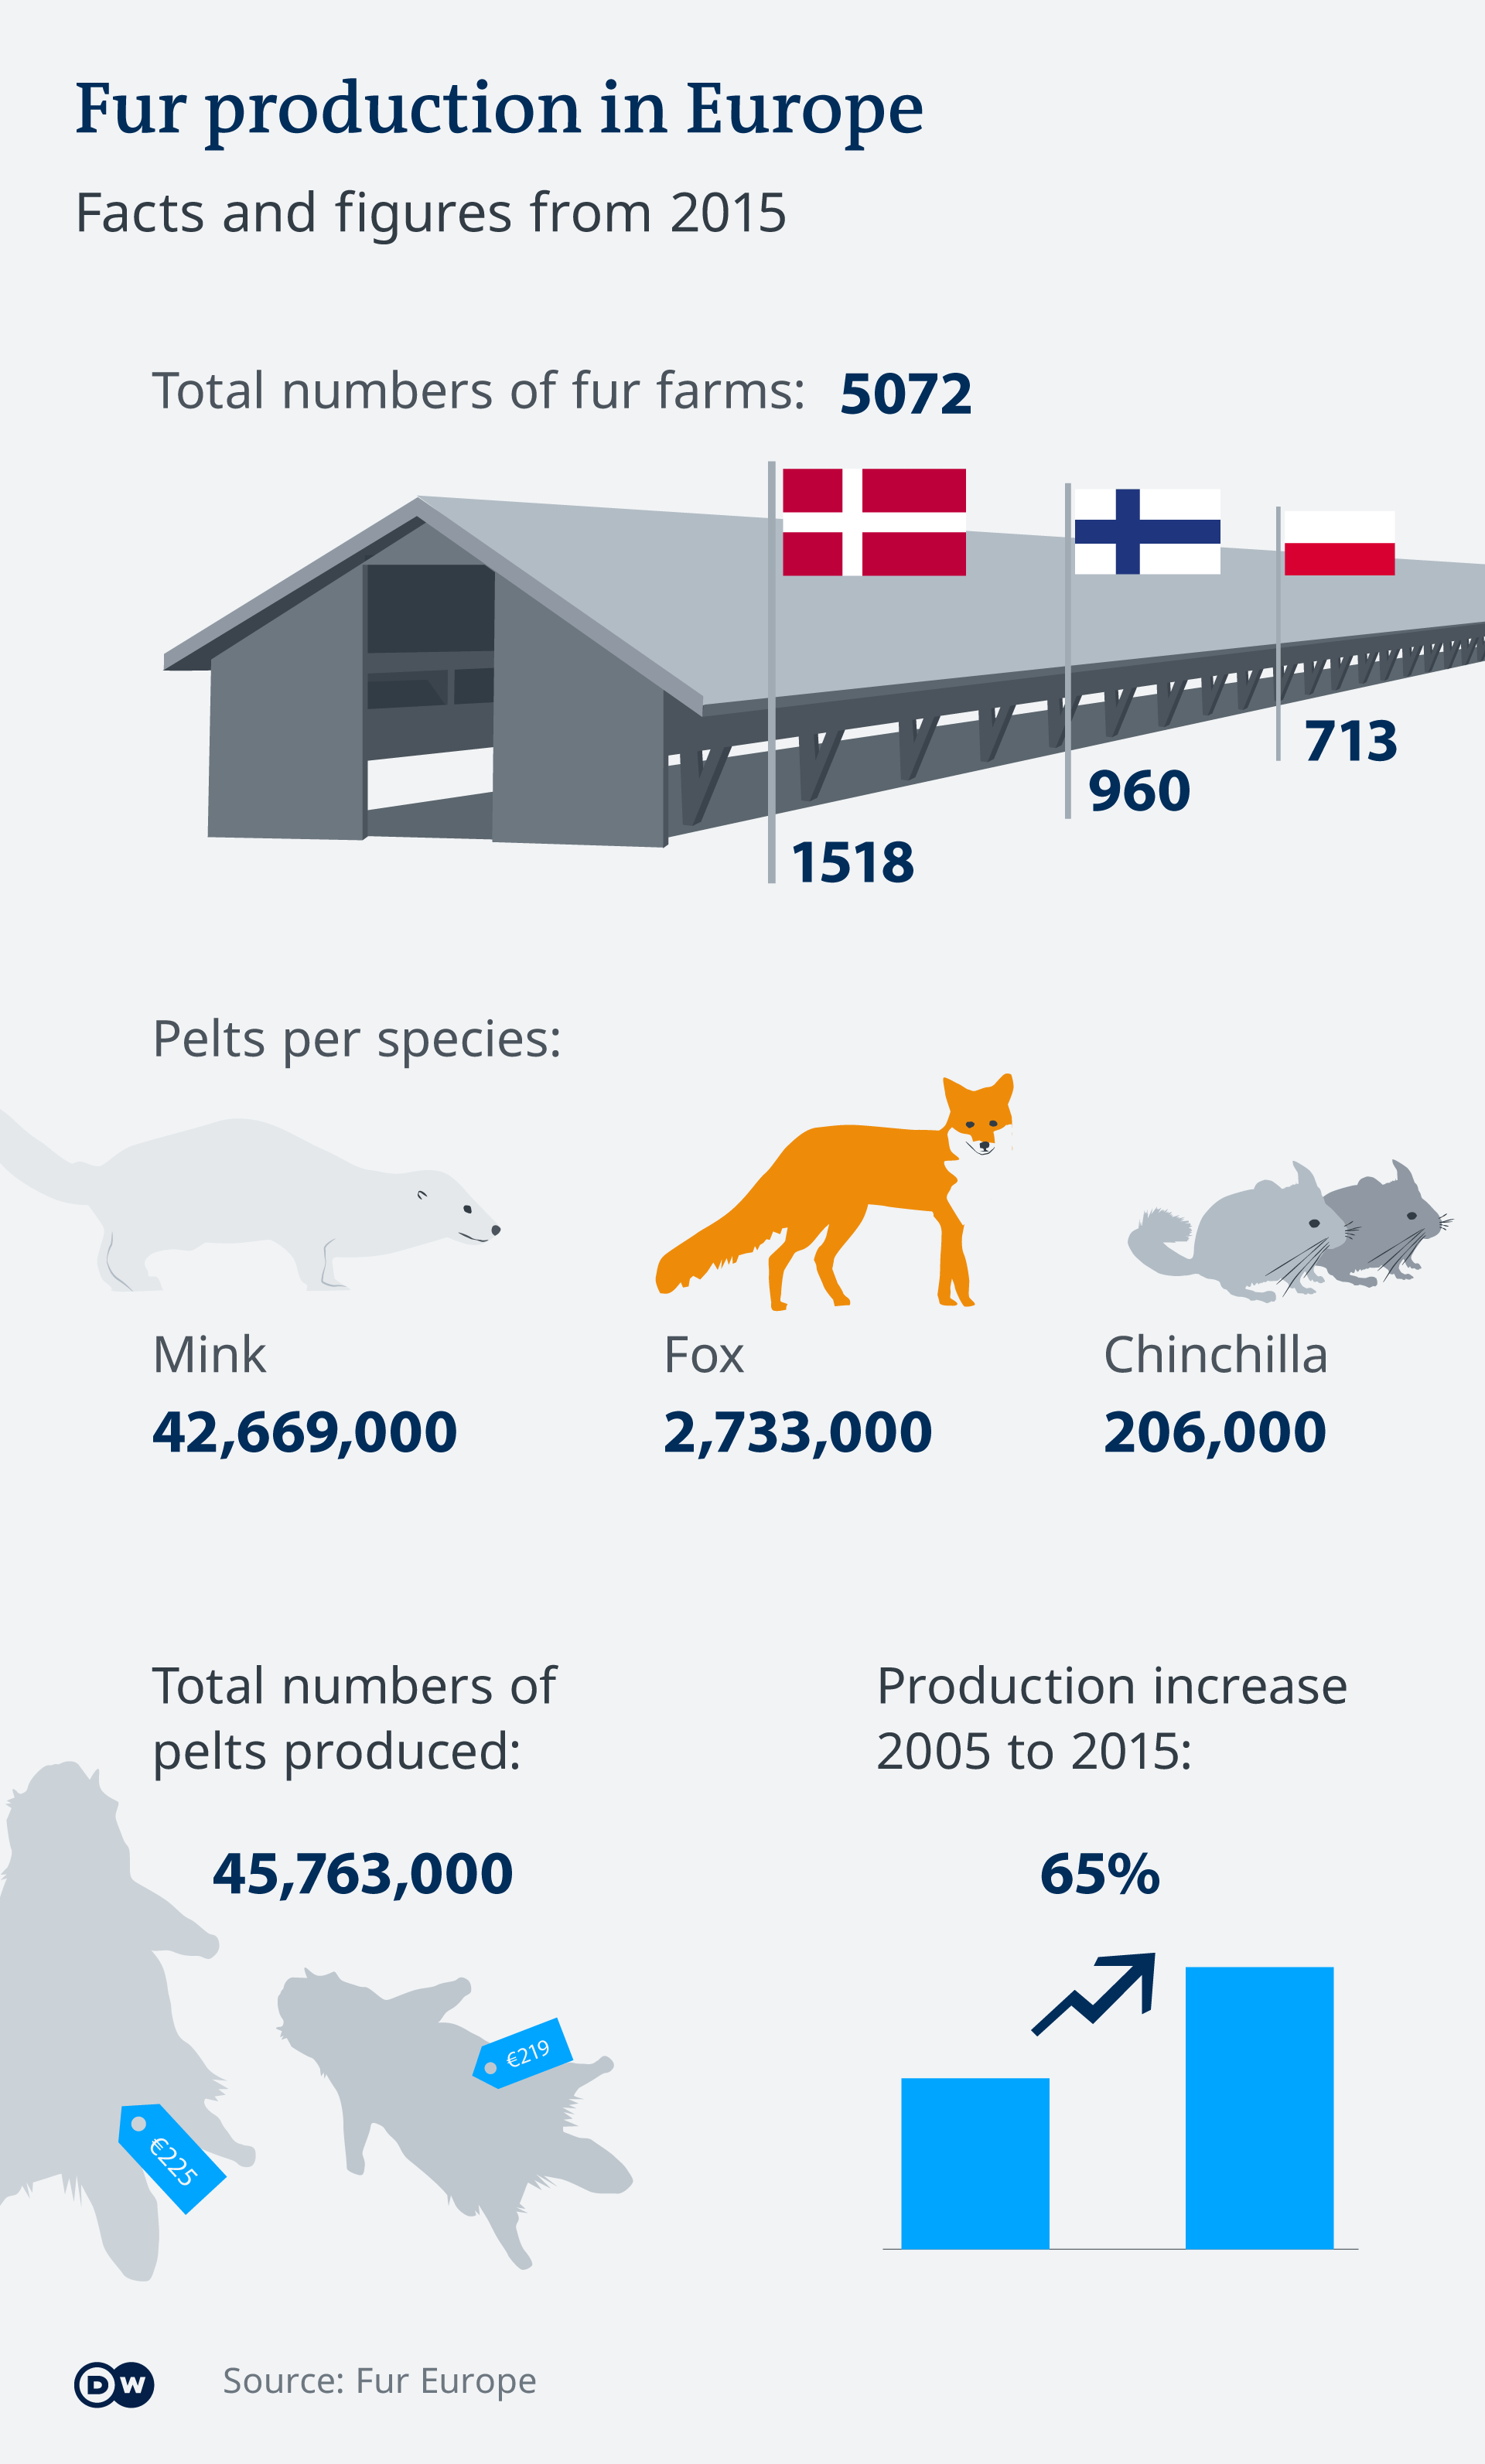 Infographic of fur animal production from 2005 to 2015